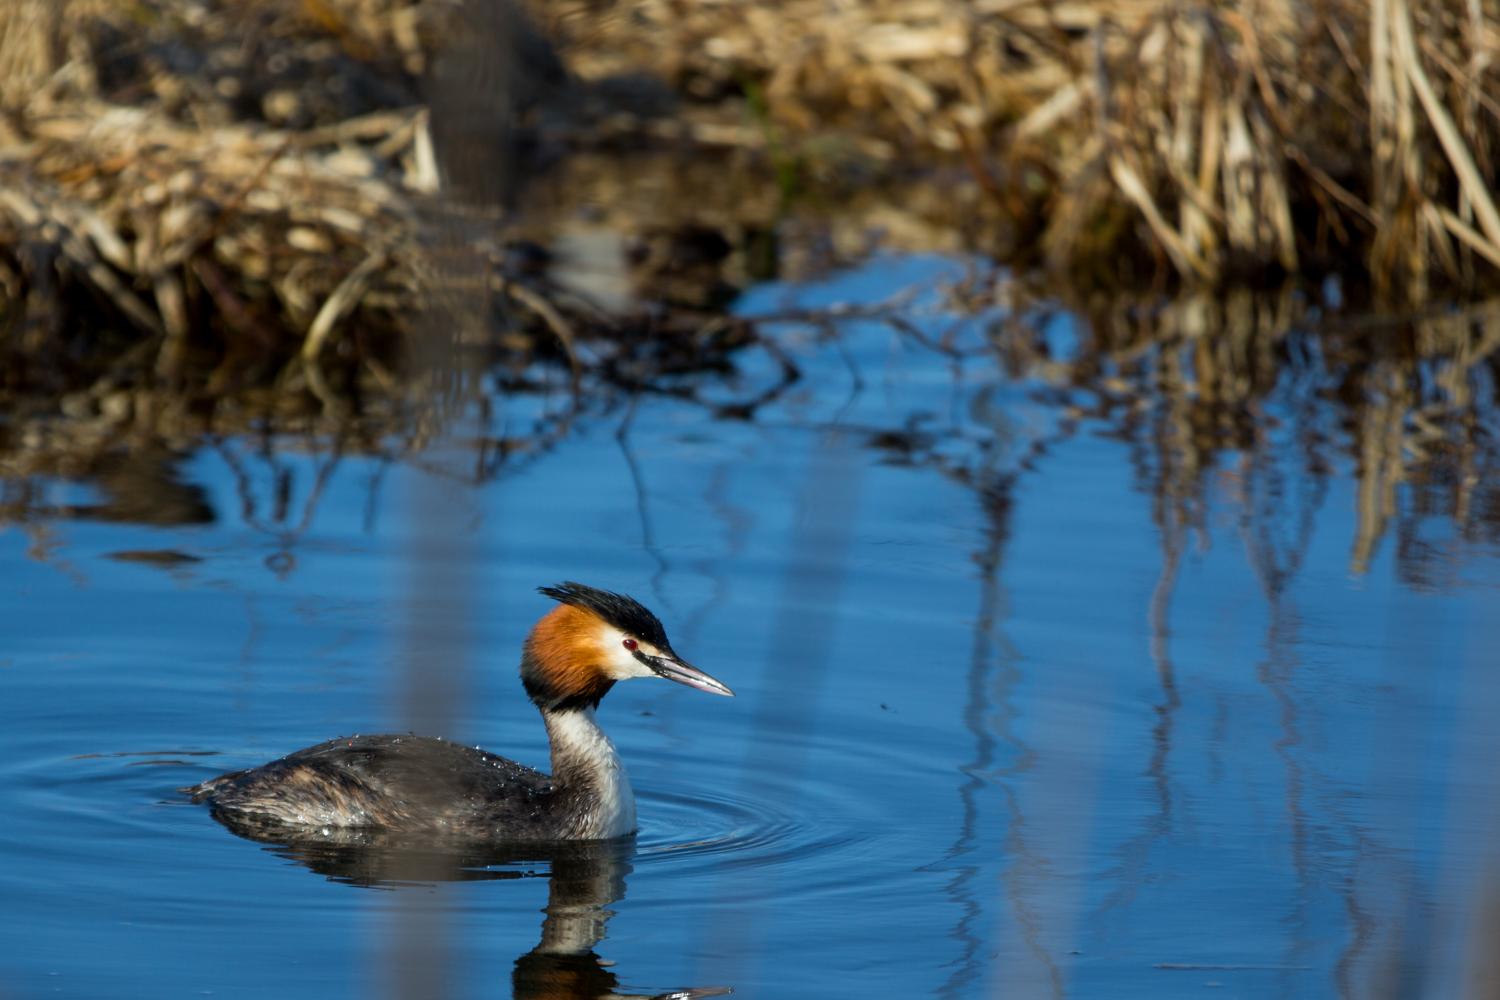 Mrs. Great Crested Grebe from the pair in the first picture